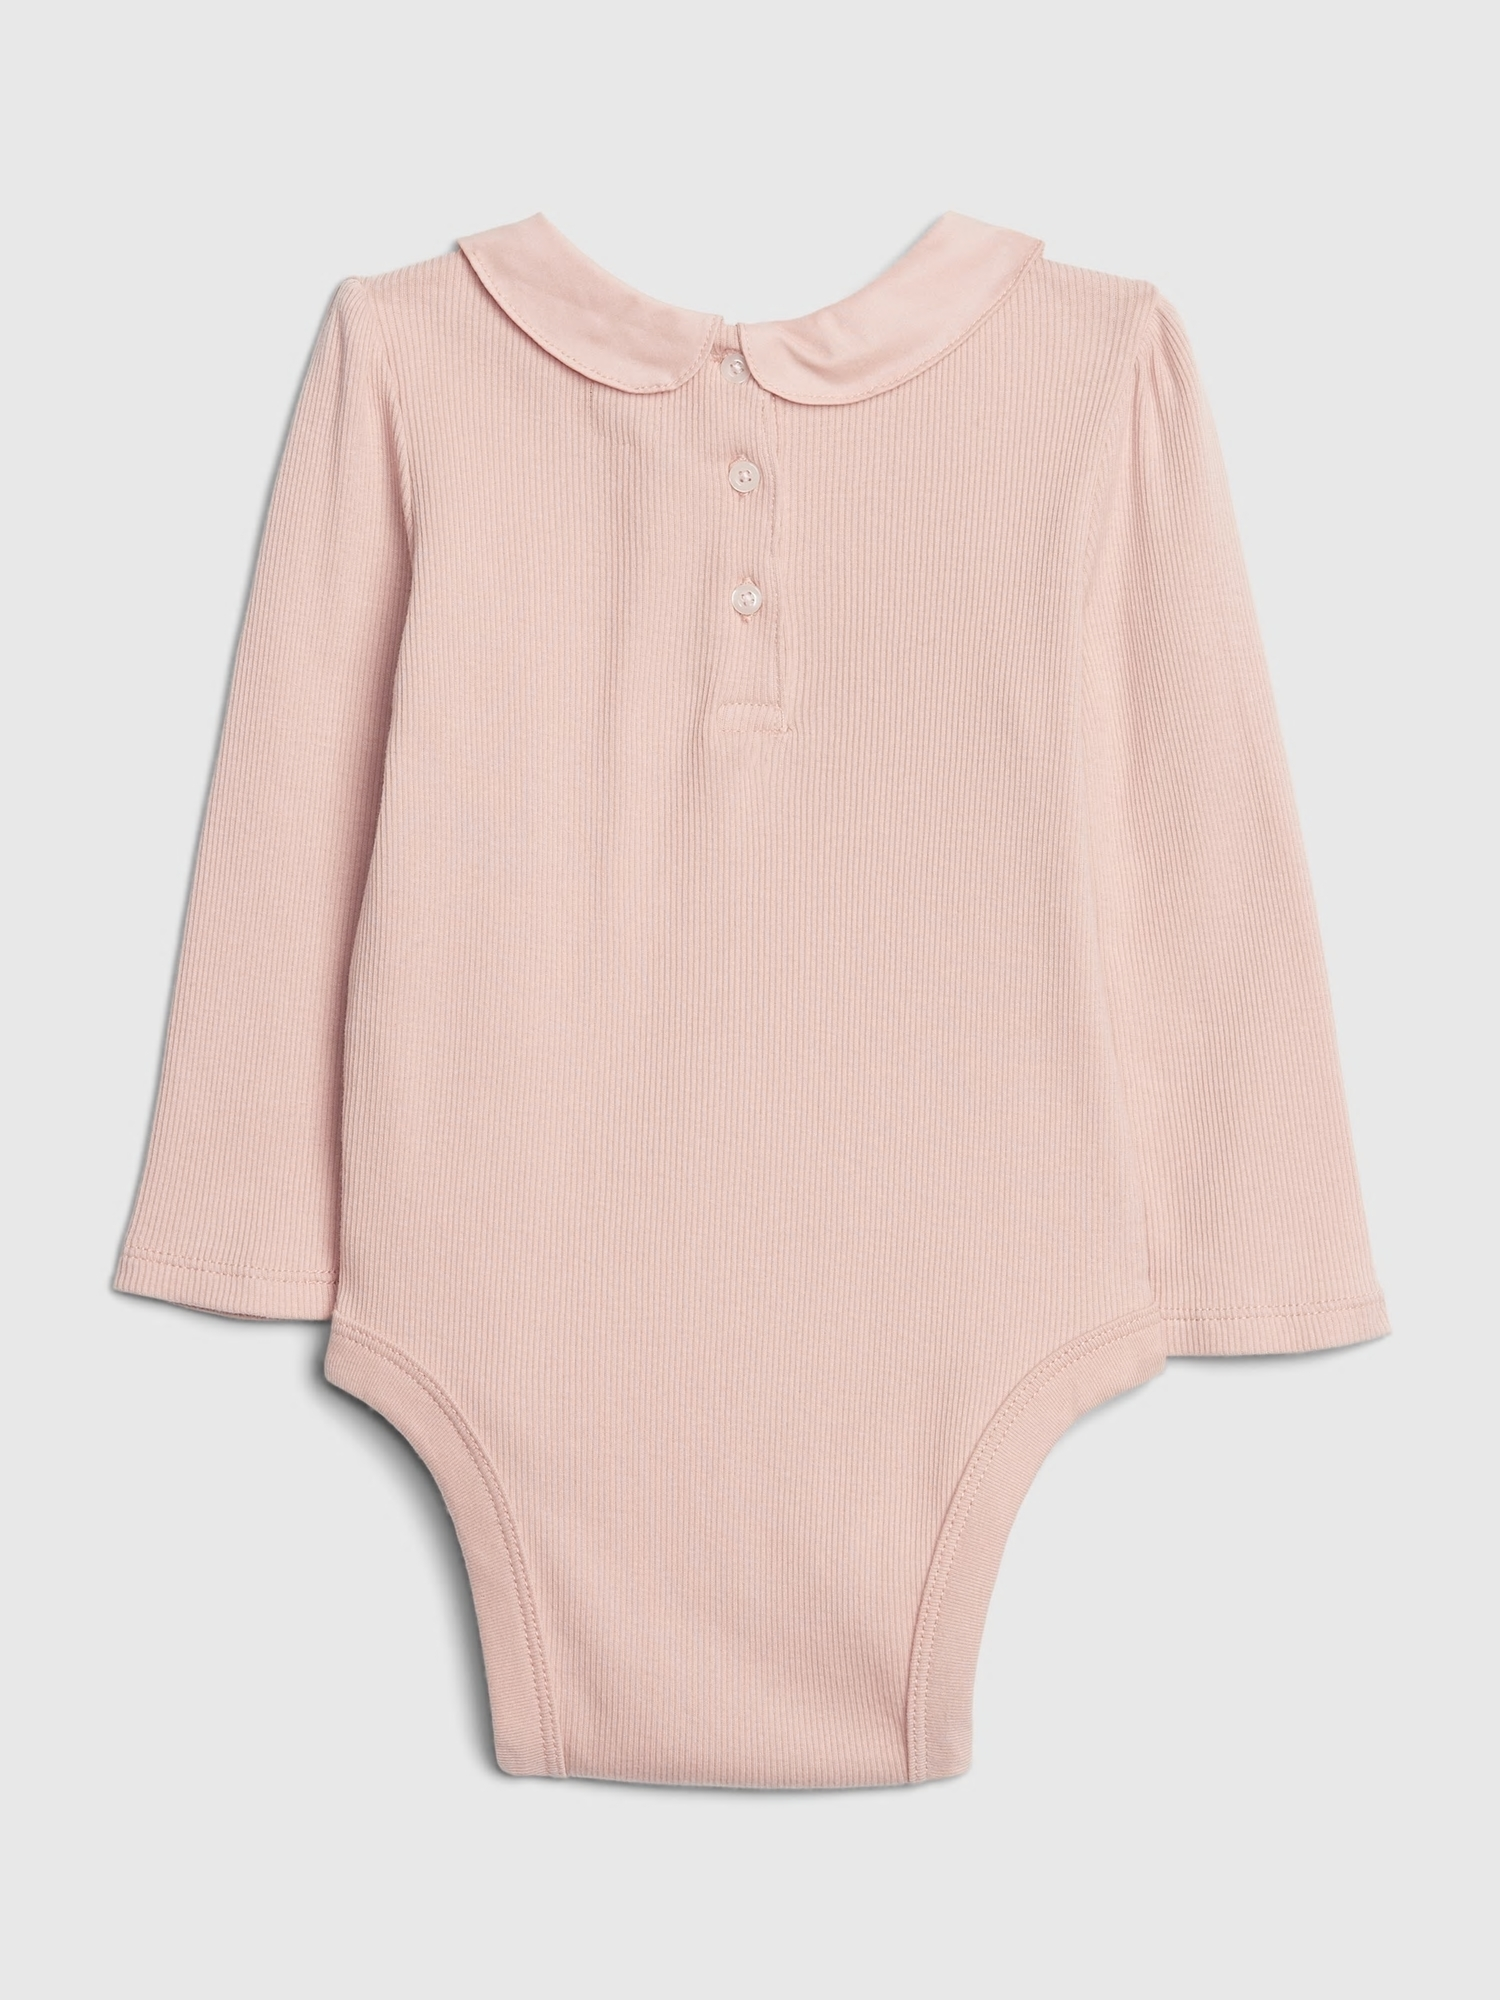 Baby body collar bodysuit (2)